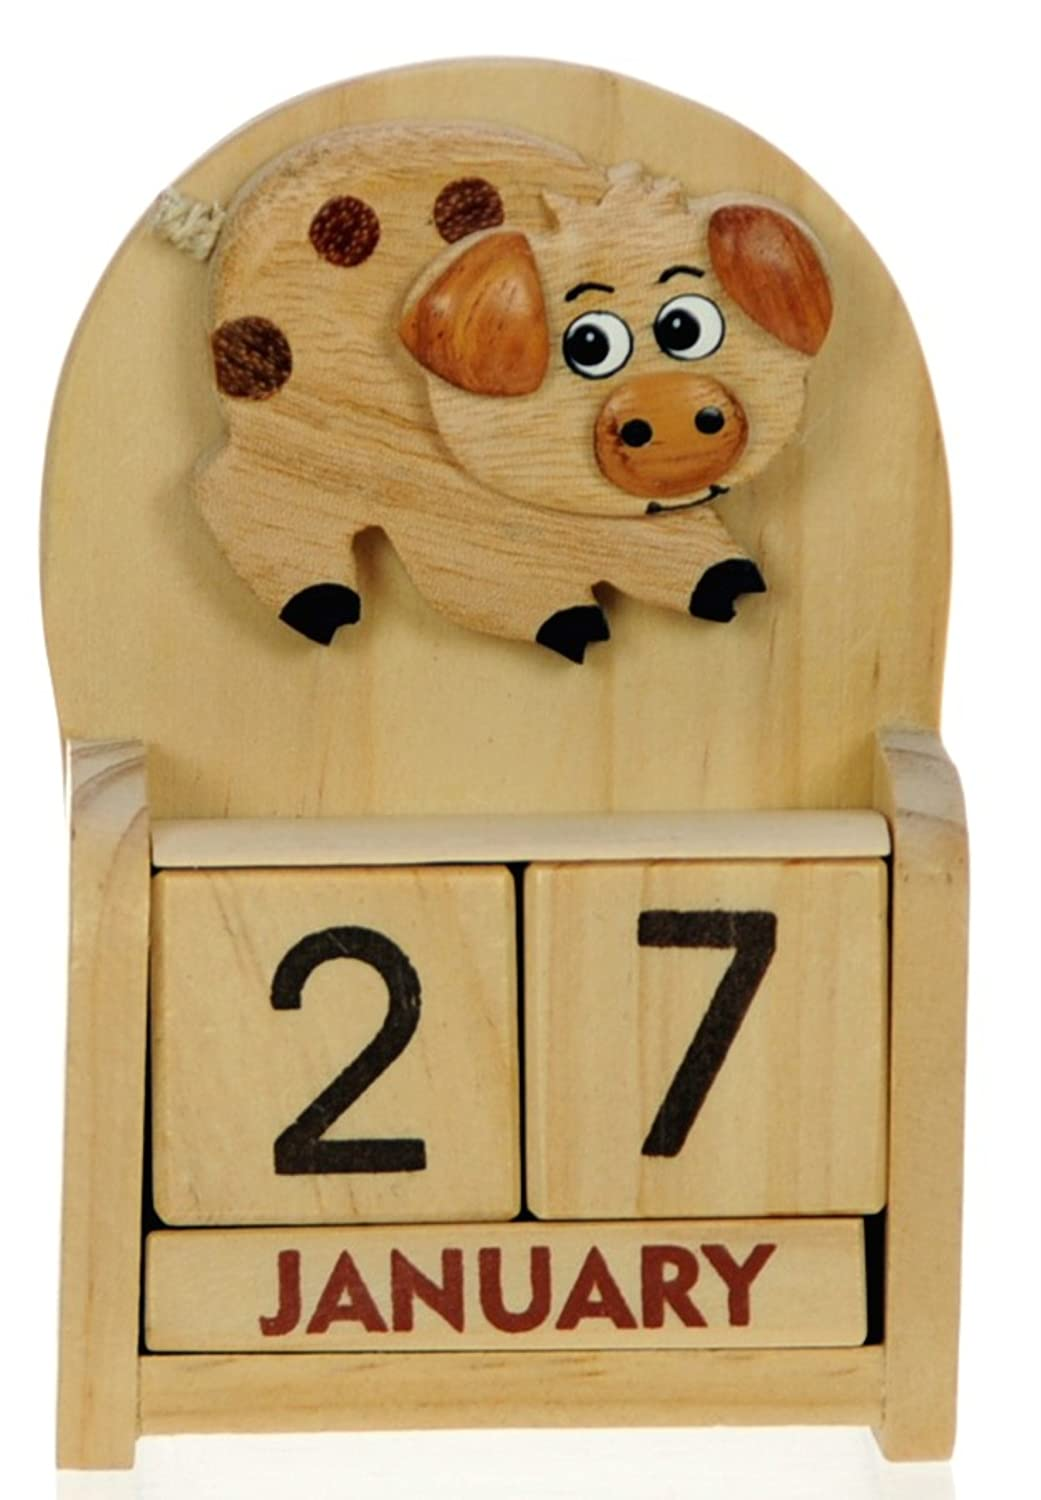 Namesakes Cute Pig Desk Calendar - Fun farm Piggy Ornament – Everlasting Gift - Perpetual Advent with wooden Month Blocks & Date - Christmas Stocking filler for children – Size 10.5 x 7 x 3.5cm All My Gift Ideas